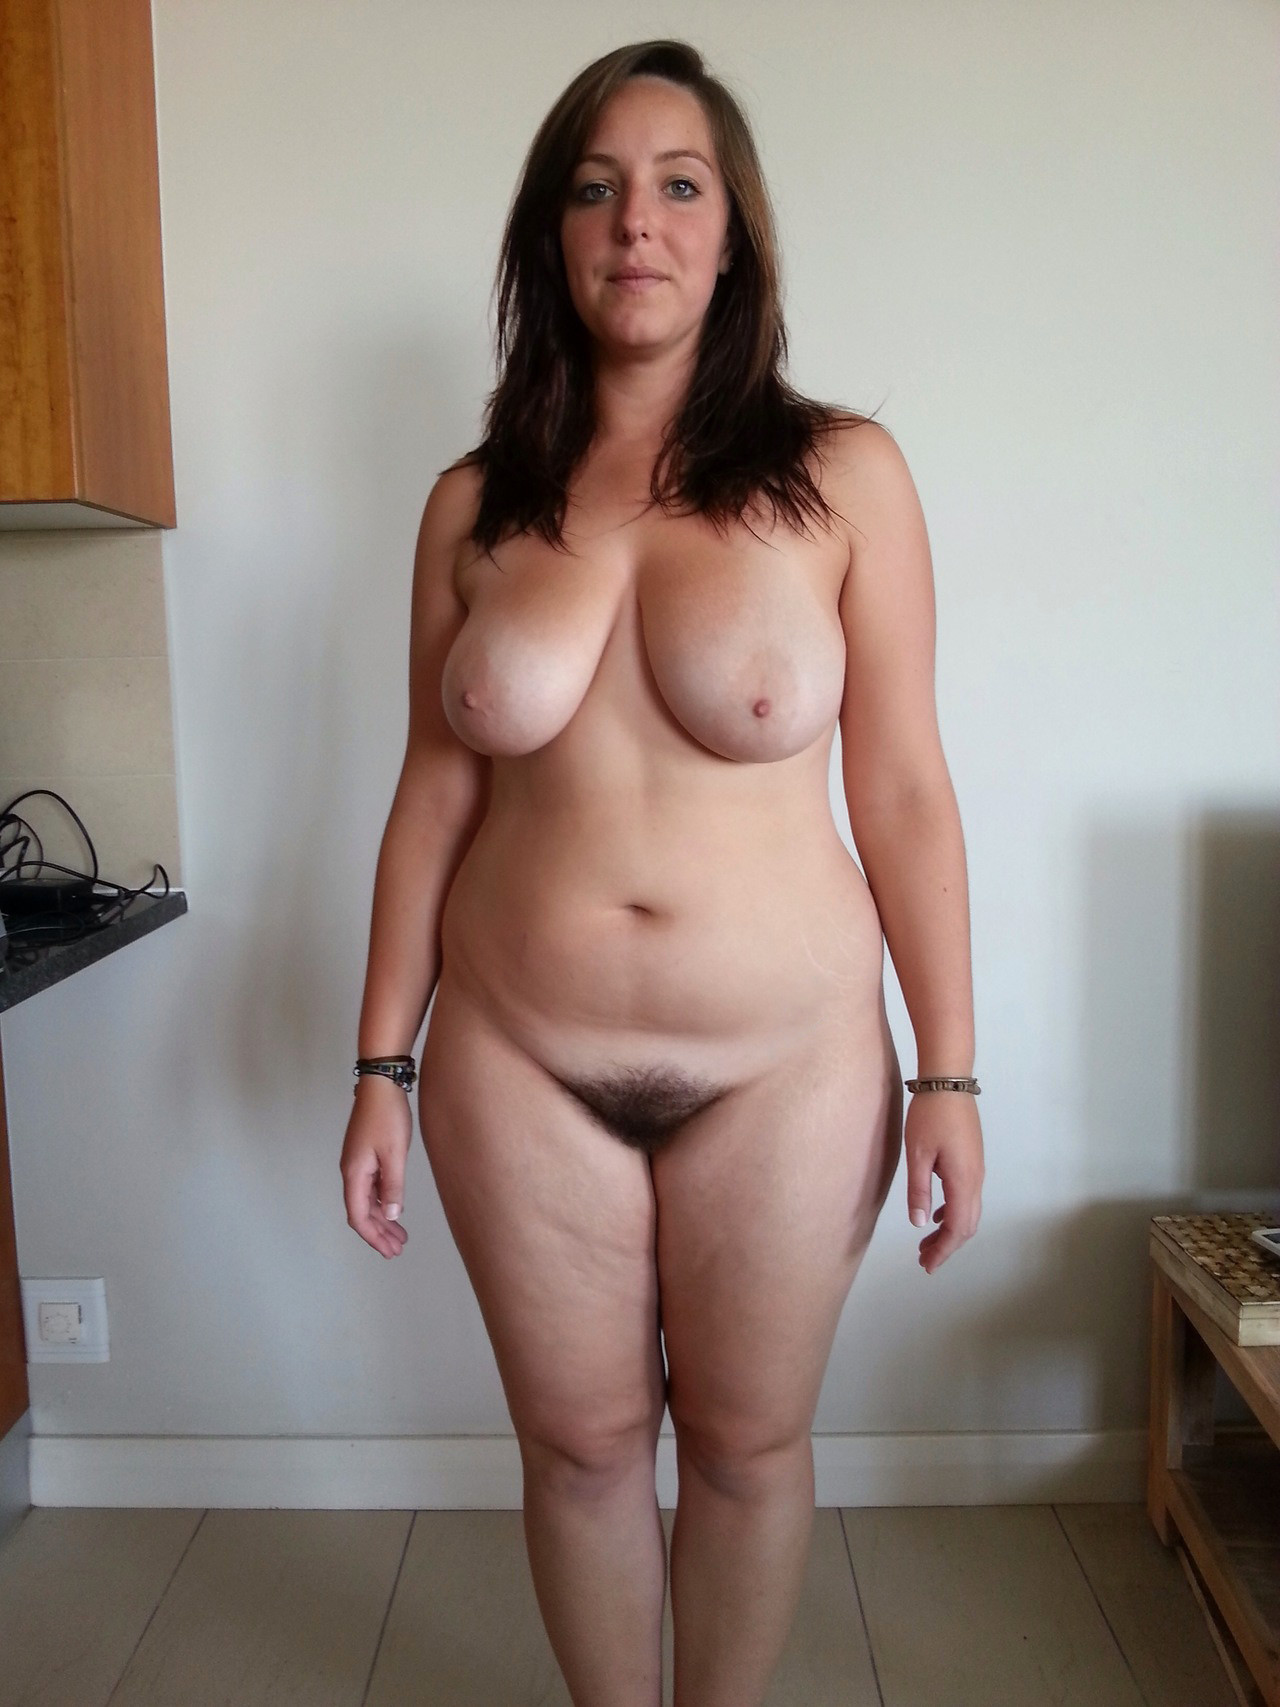 sex-videos-chubby-nude-females-caliber